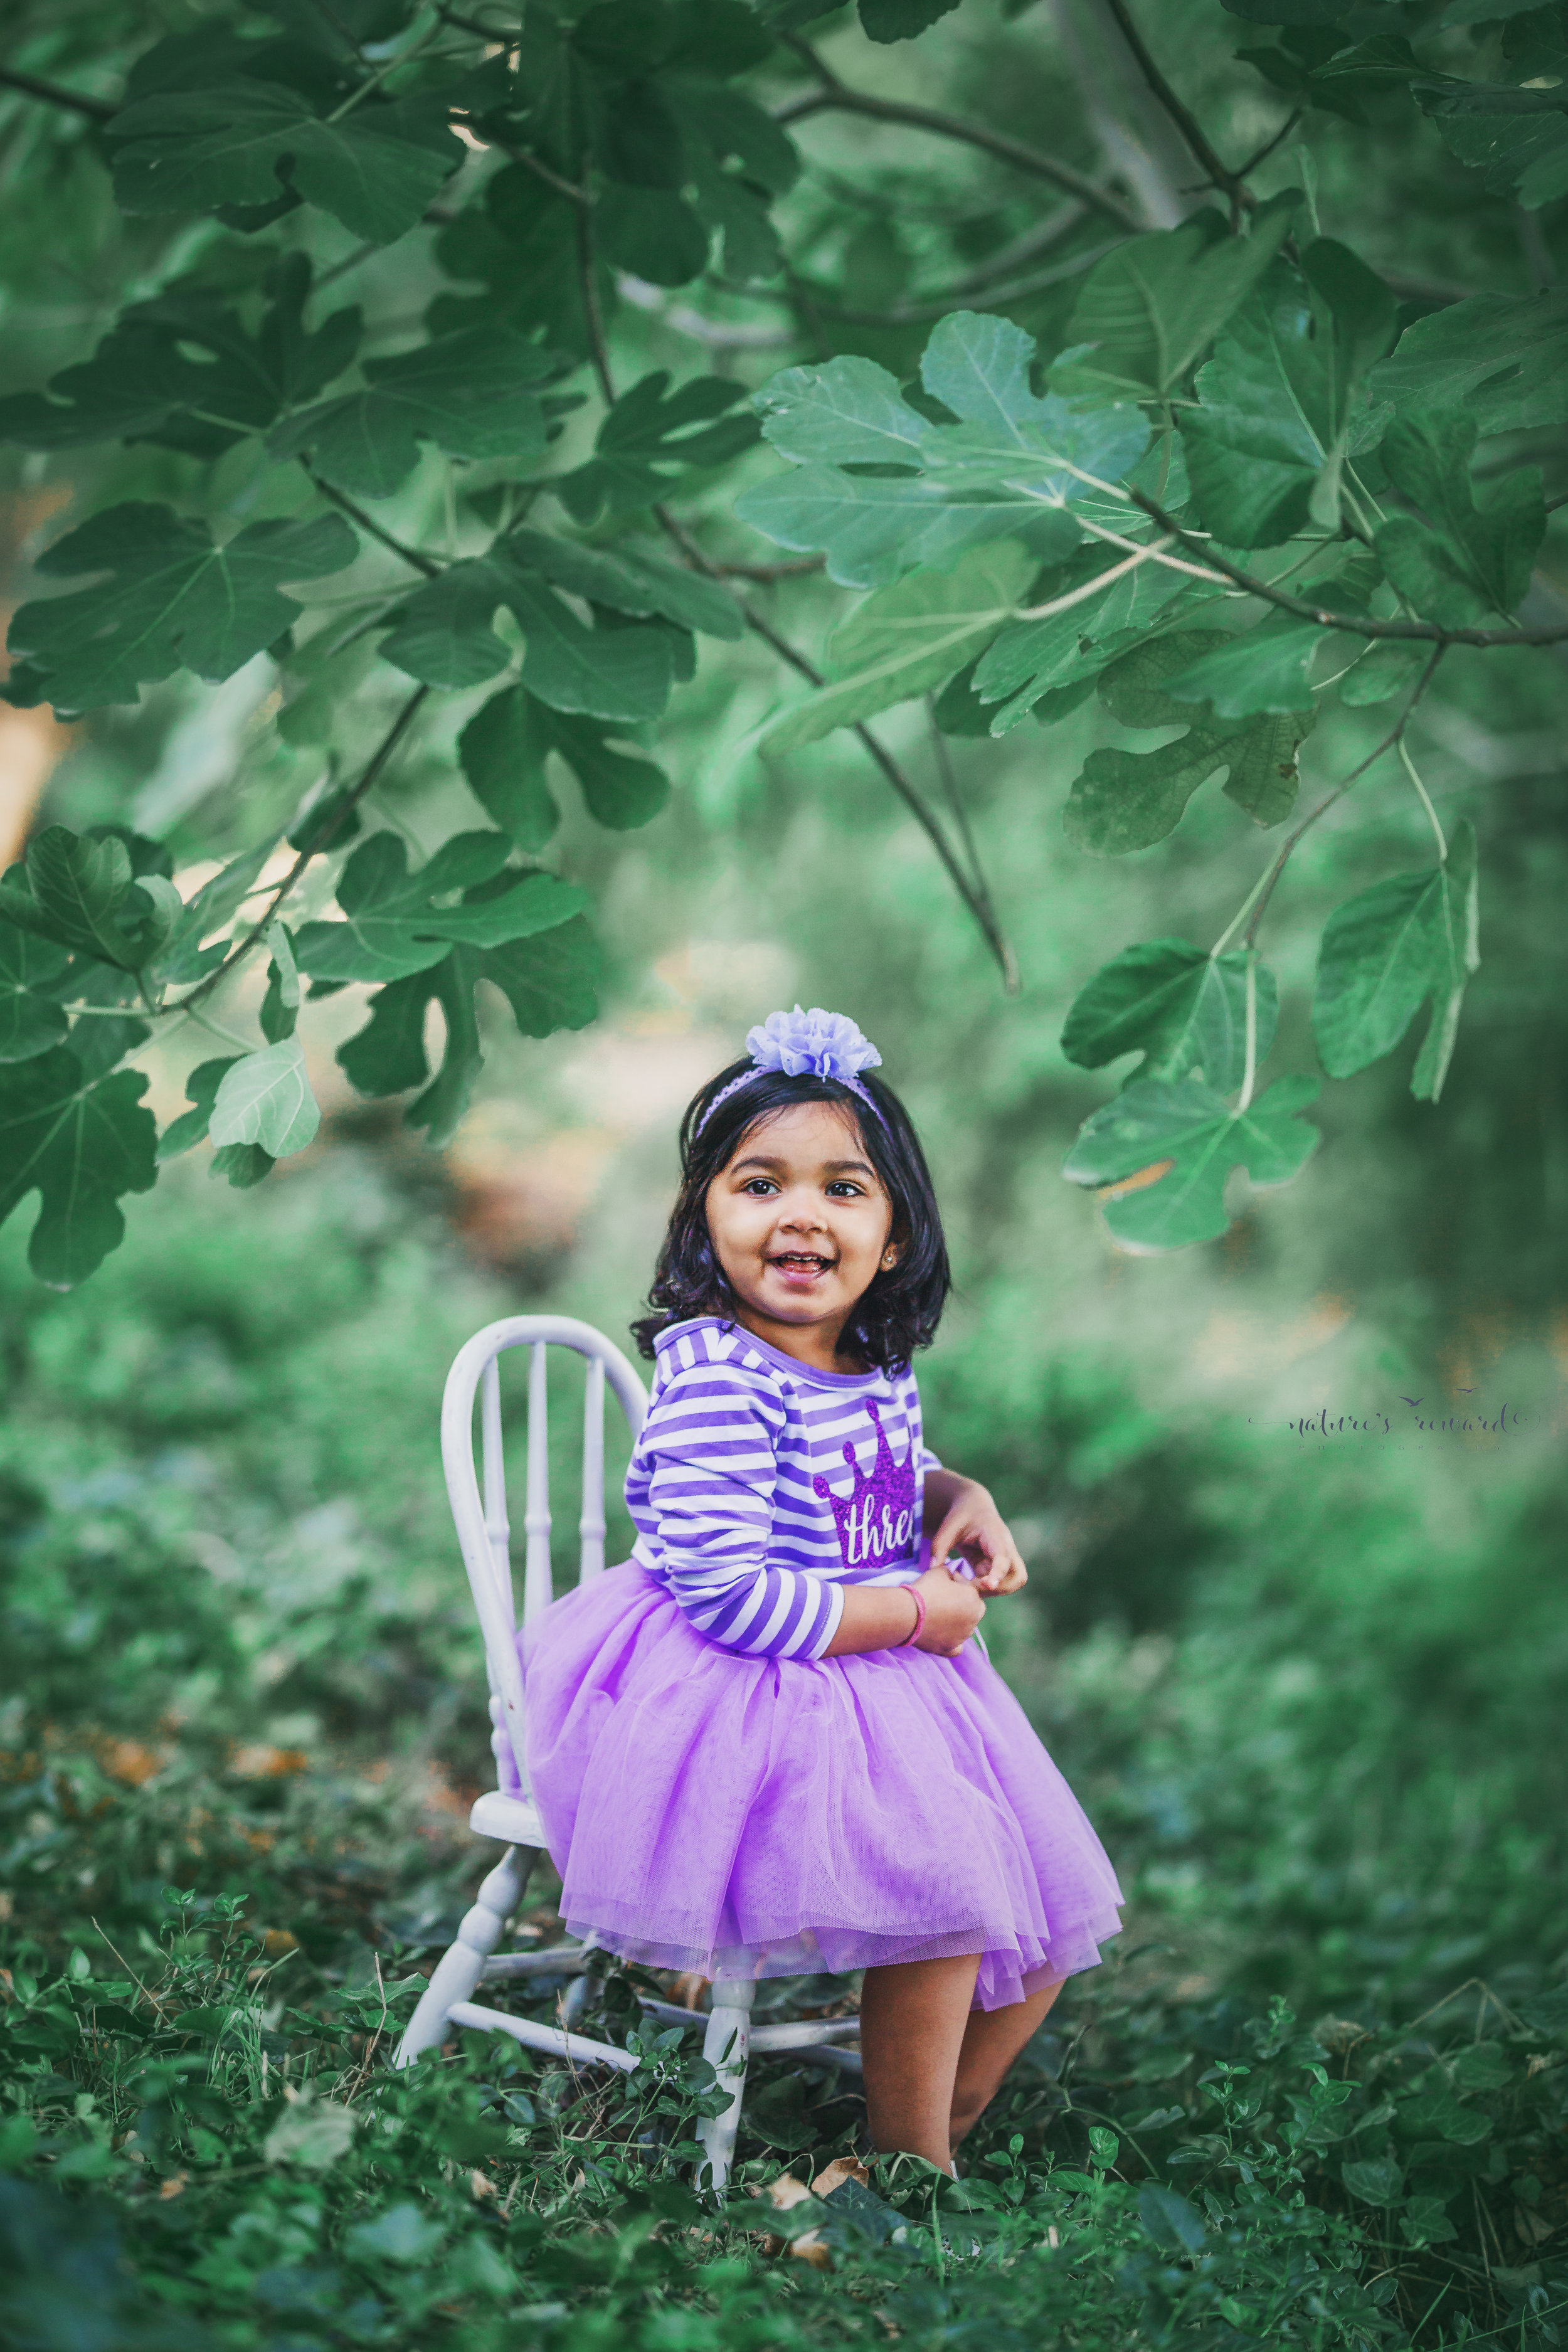 She is 3 birthday photography session while wearing a purple striped and tulle bottom dress sitting on a chair in a magical green park setting a portrait by Nature's Reward Photography